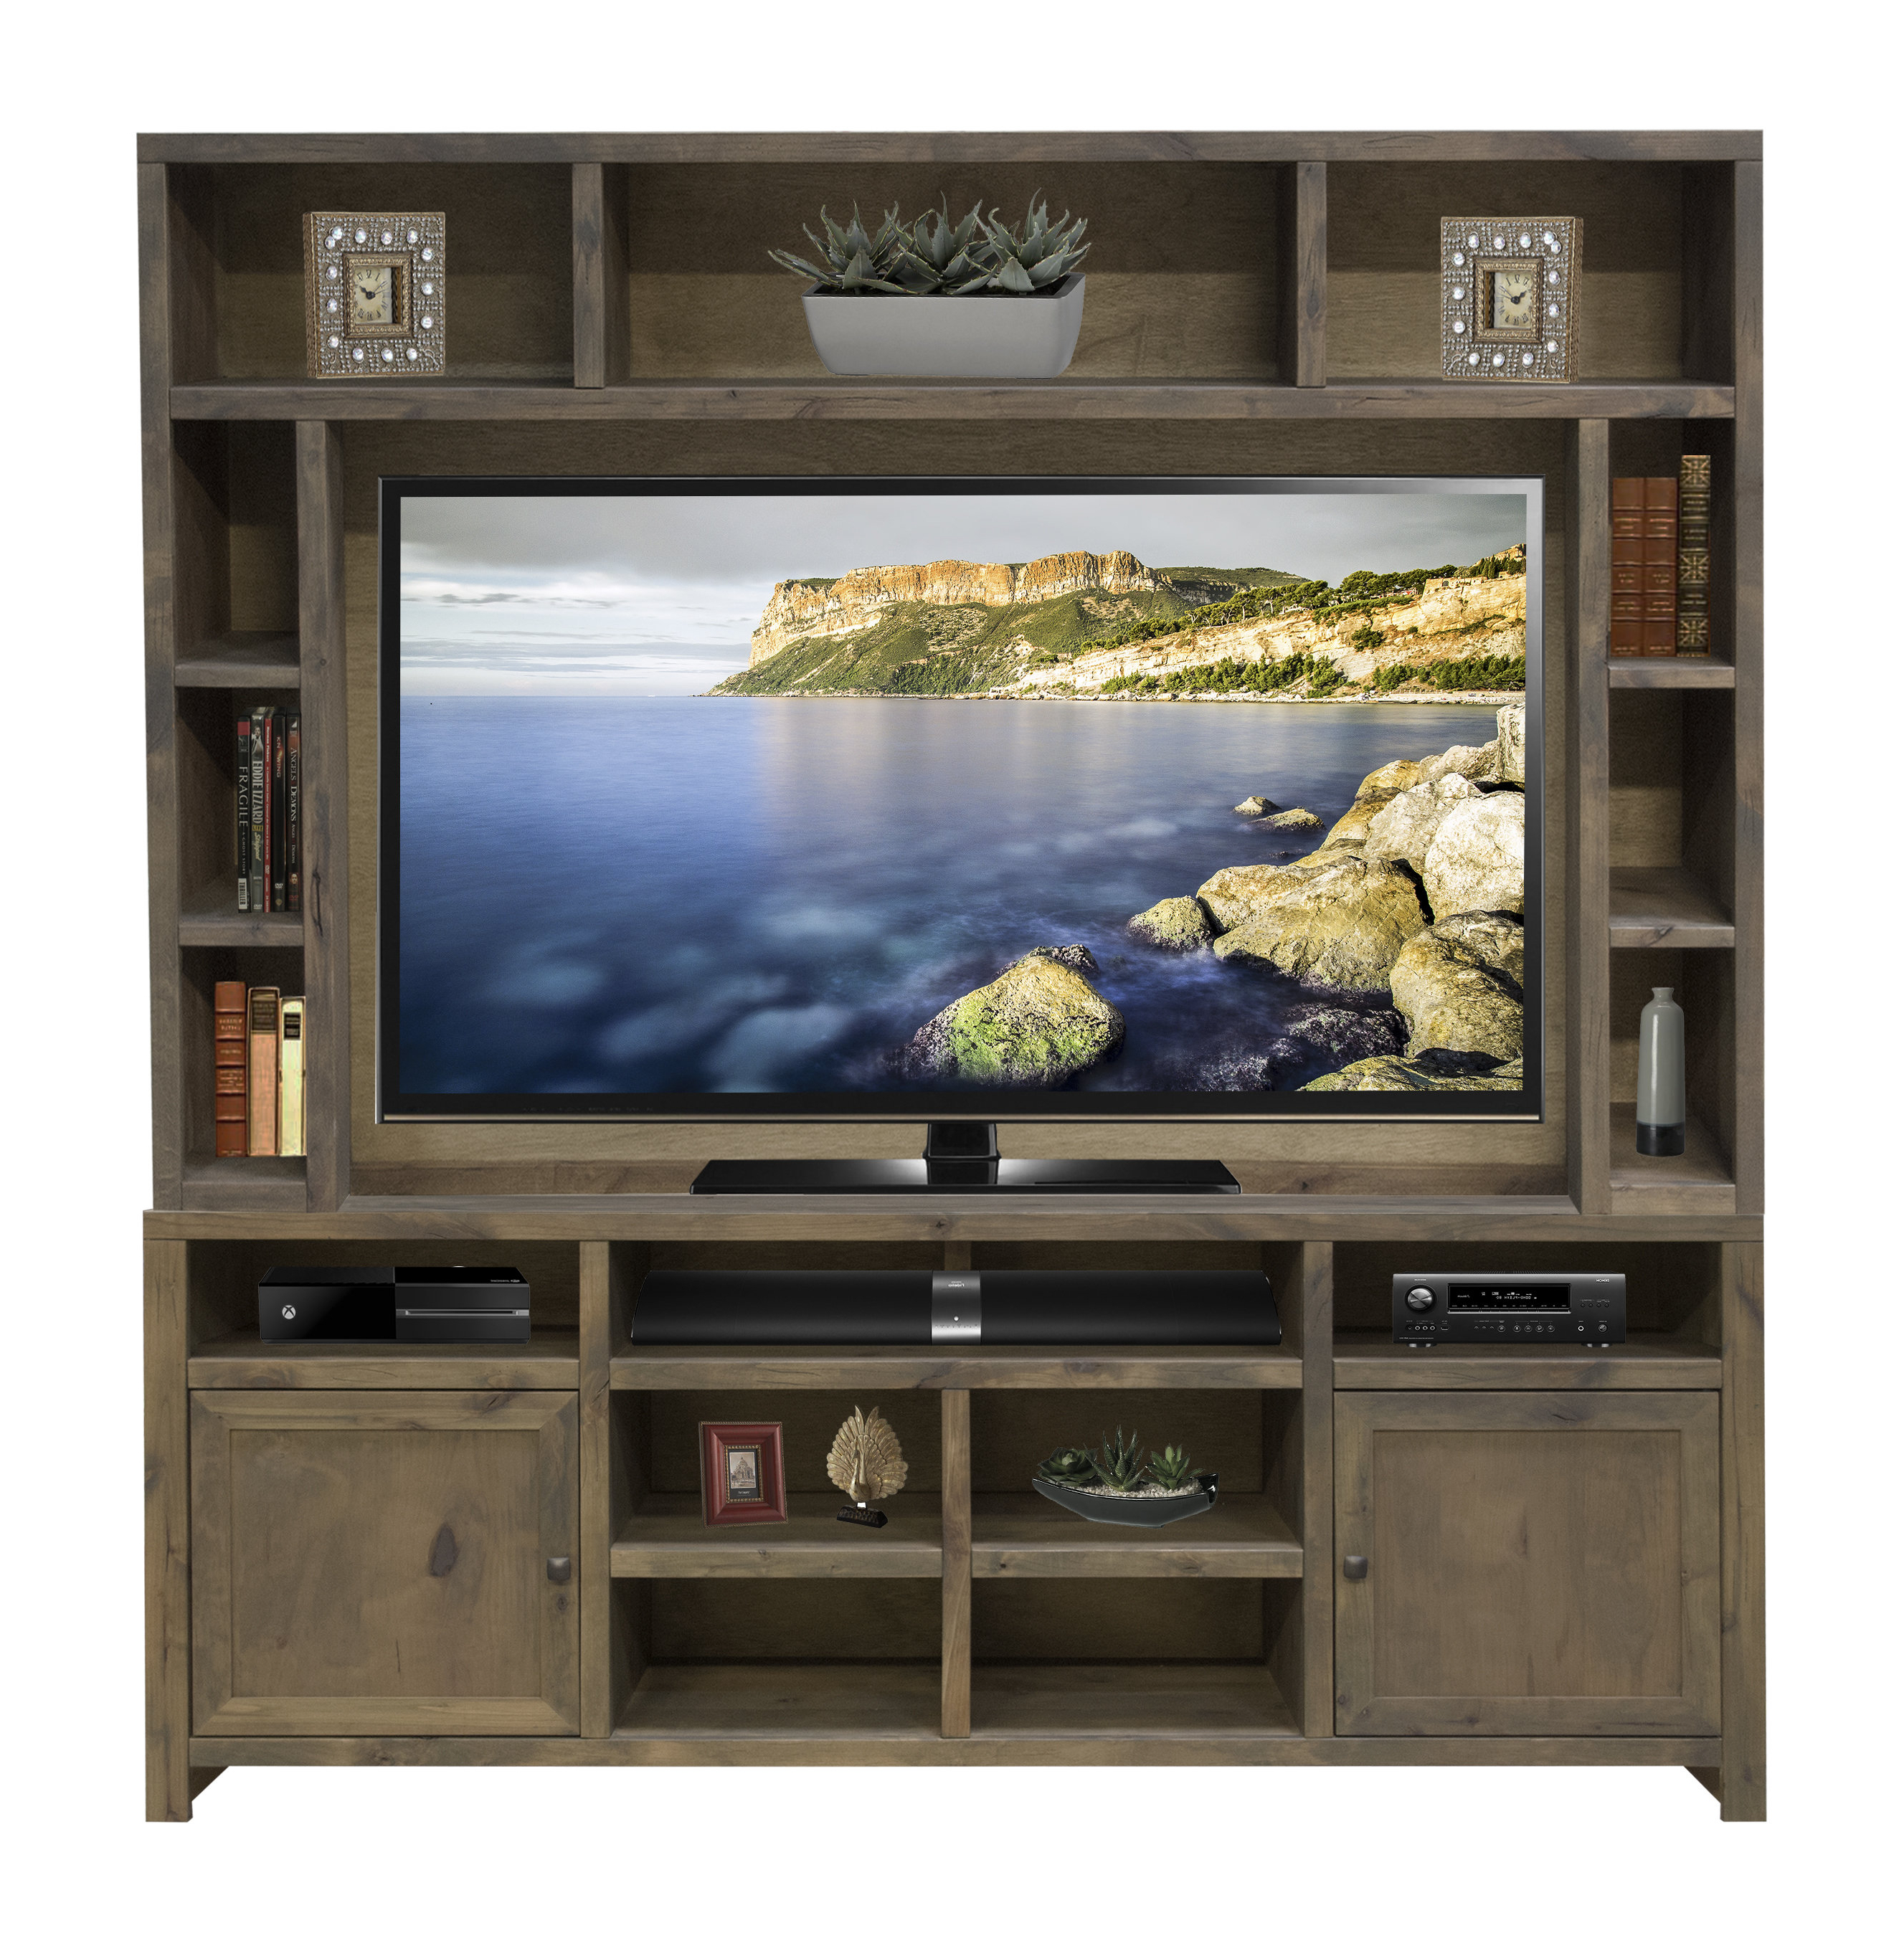 Entertainment Center Rustic Tv Stands & Entertainment Centers You'll Within Popular Rustic Tv Stands For Sale (Gallery 12 of 20)